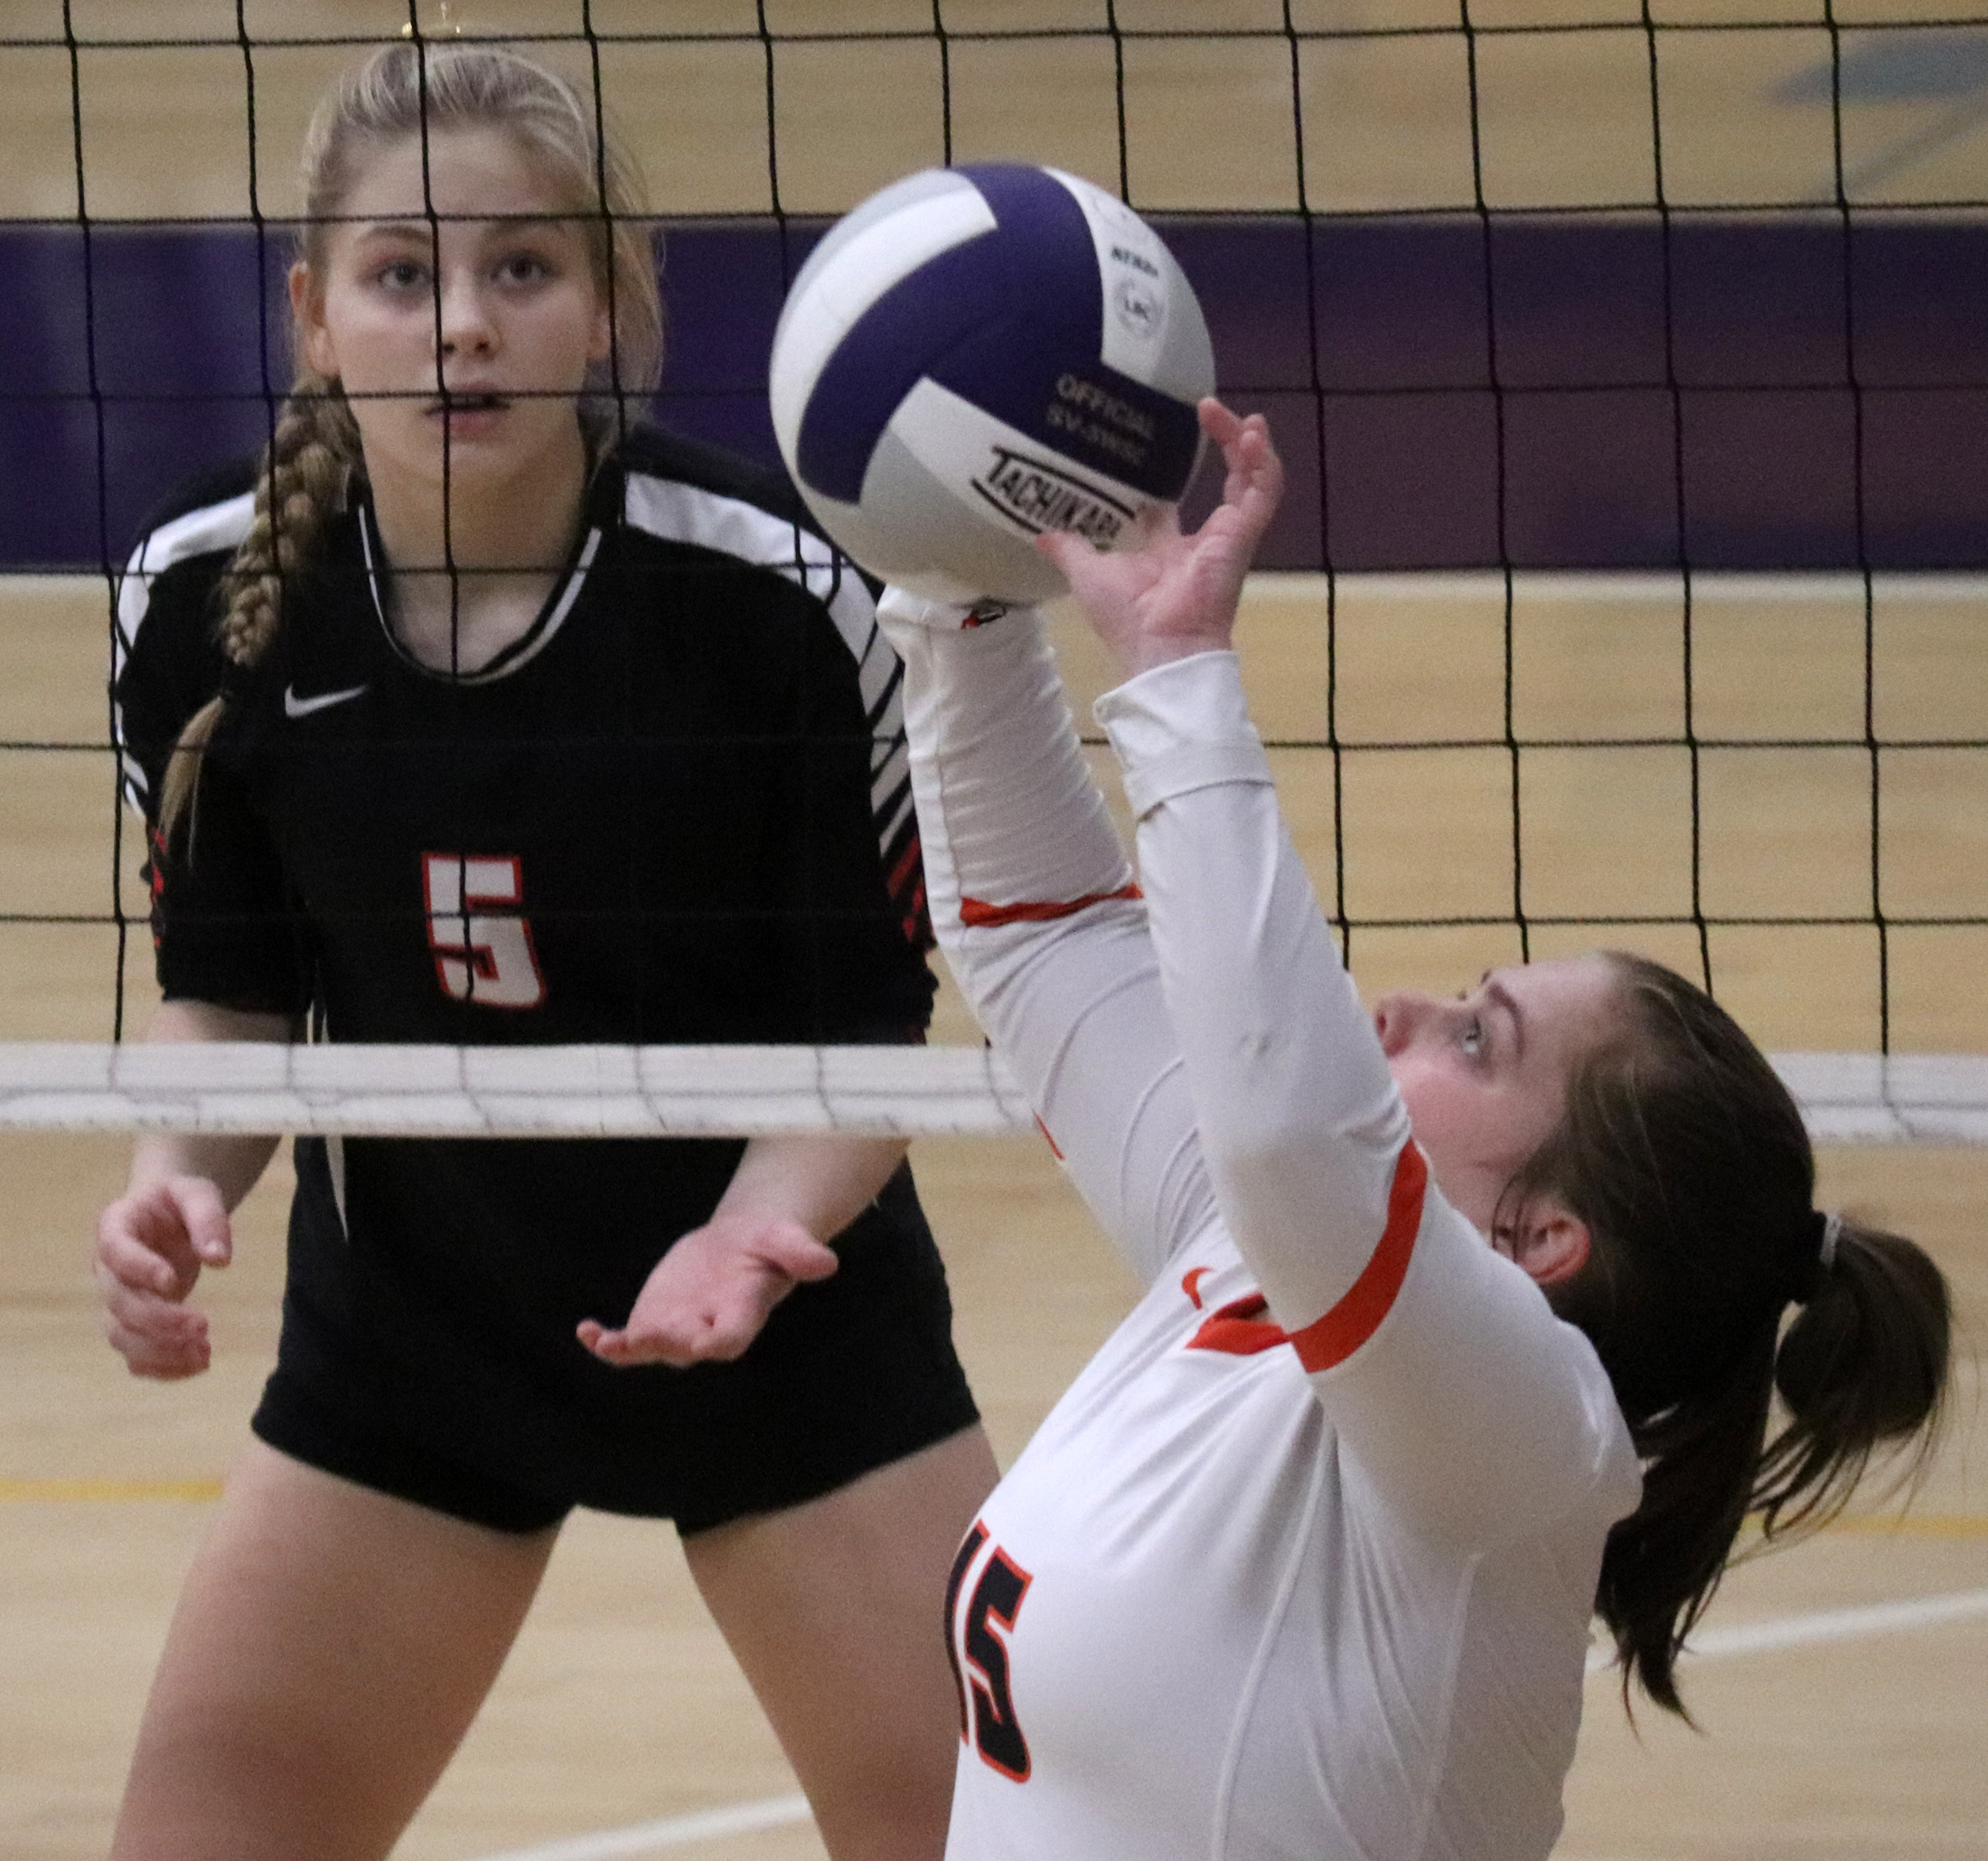 Comets fall in 3 sets to NH in match for 2nd place